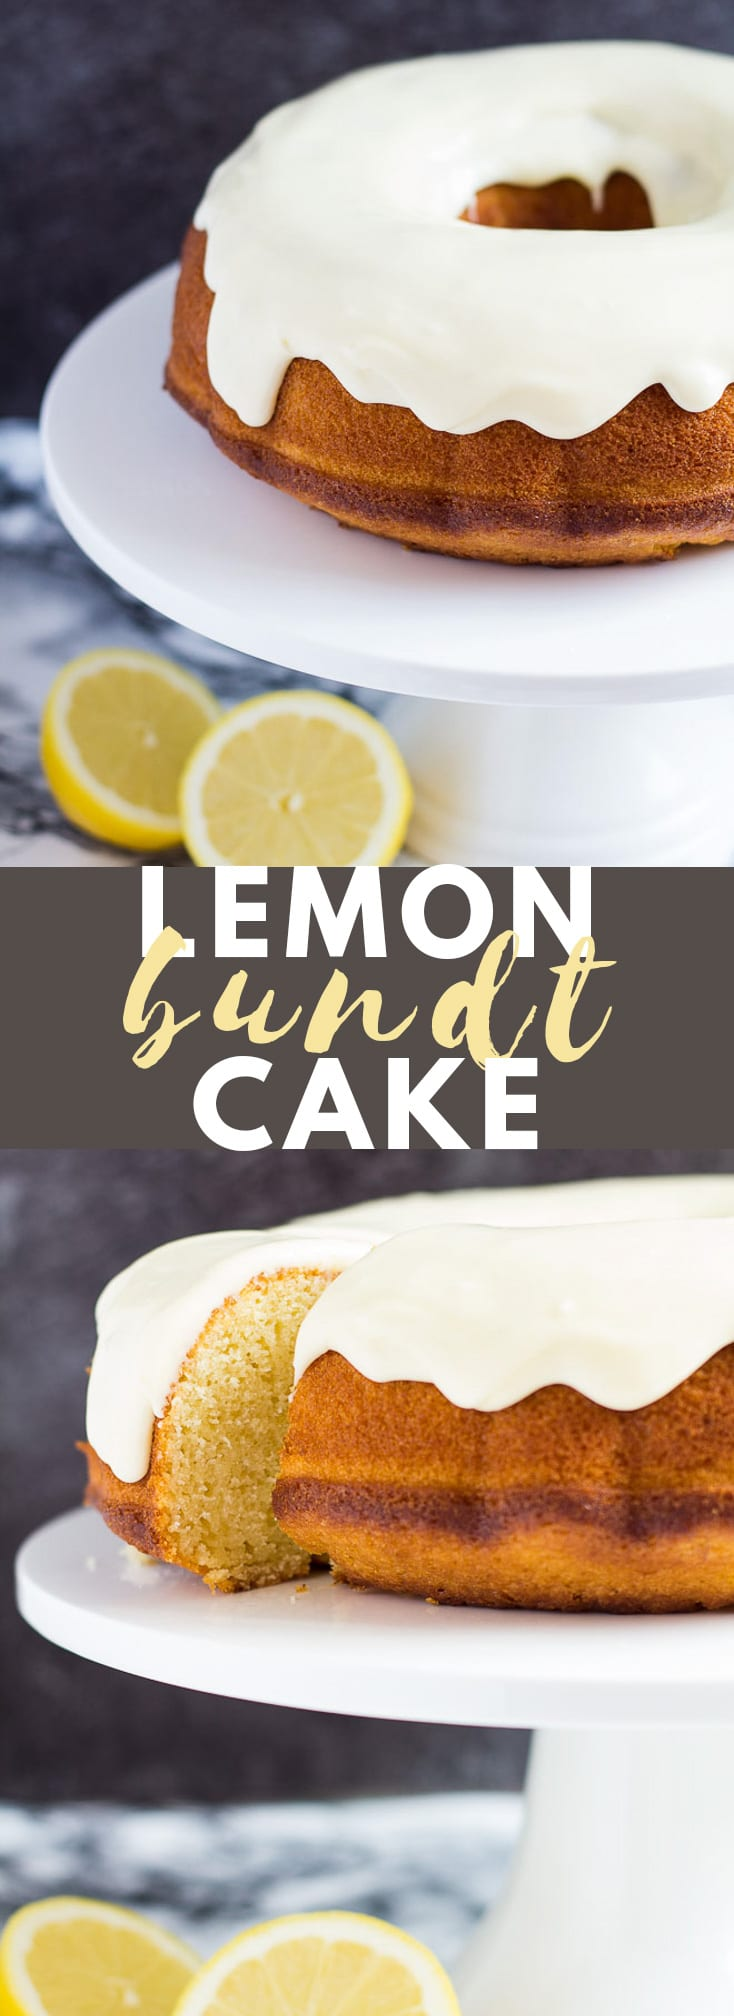 Lemon Bundt Cake - This deliciously moist and fluffy lemon bundt cake drizzled with a thick lemon icing is bursting with refreshing and tangyflavours. A perfect cake for Spring/Summer! #lemoncake #bundtcake #cakerecipes #recipe